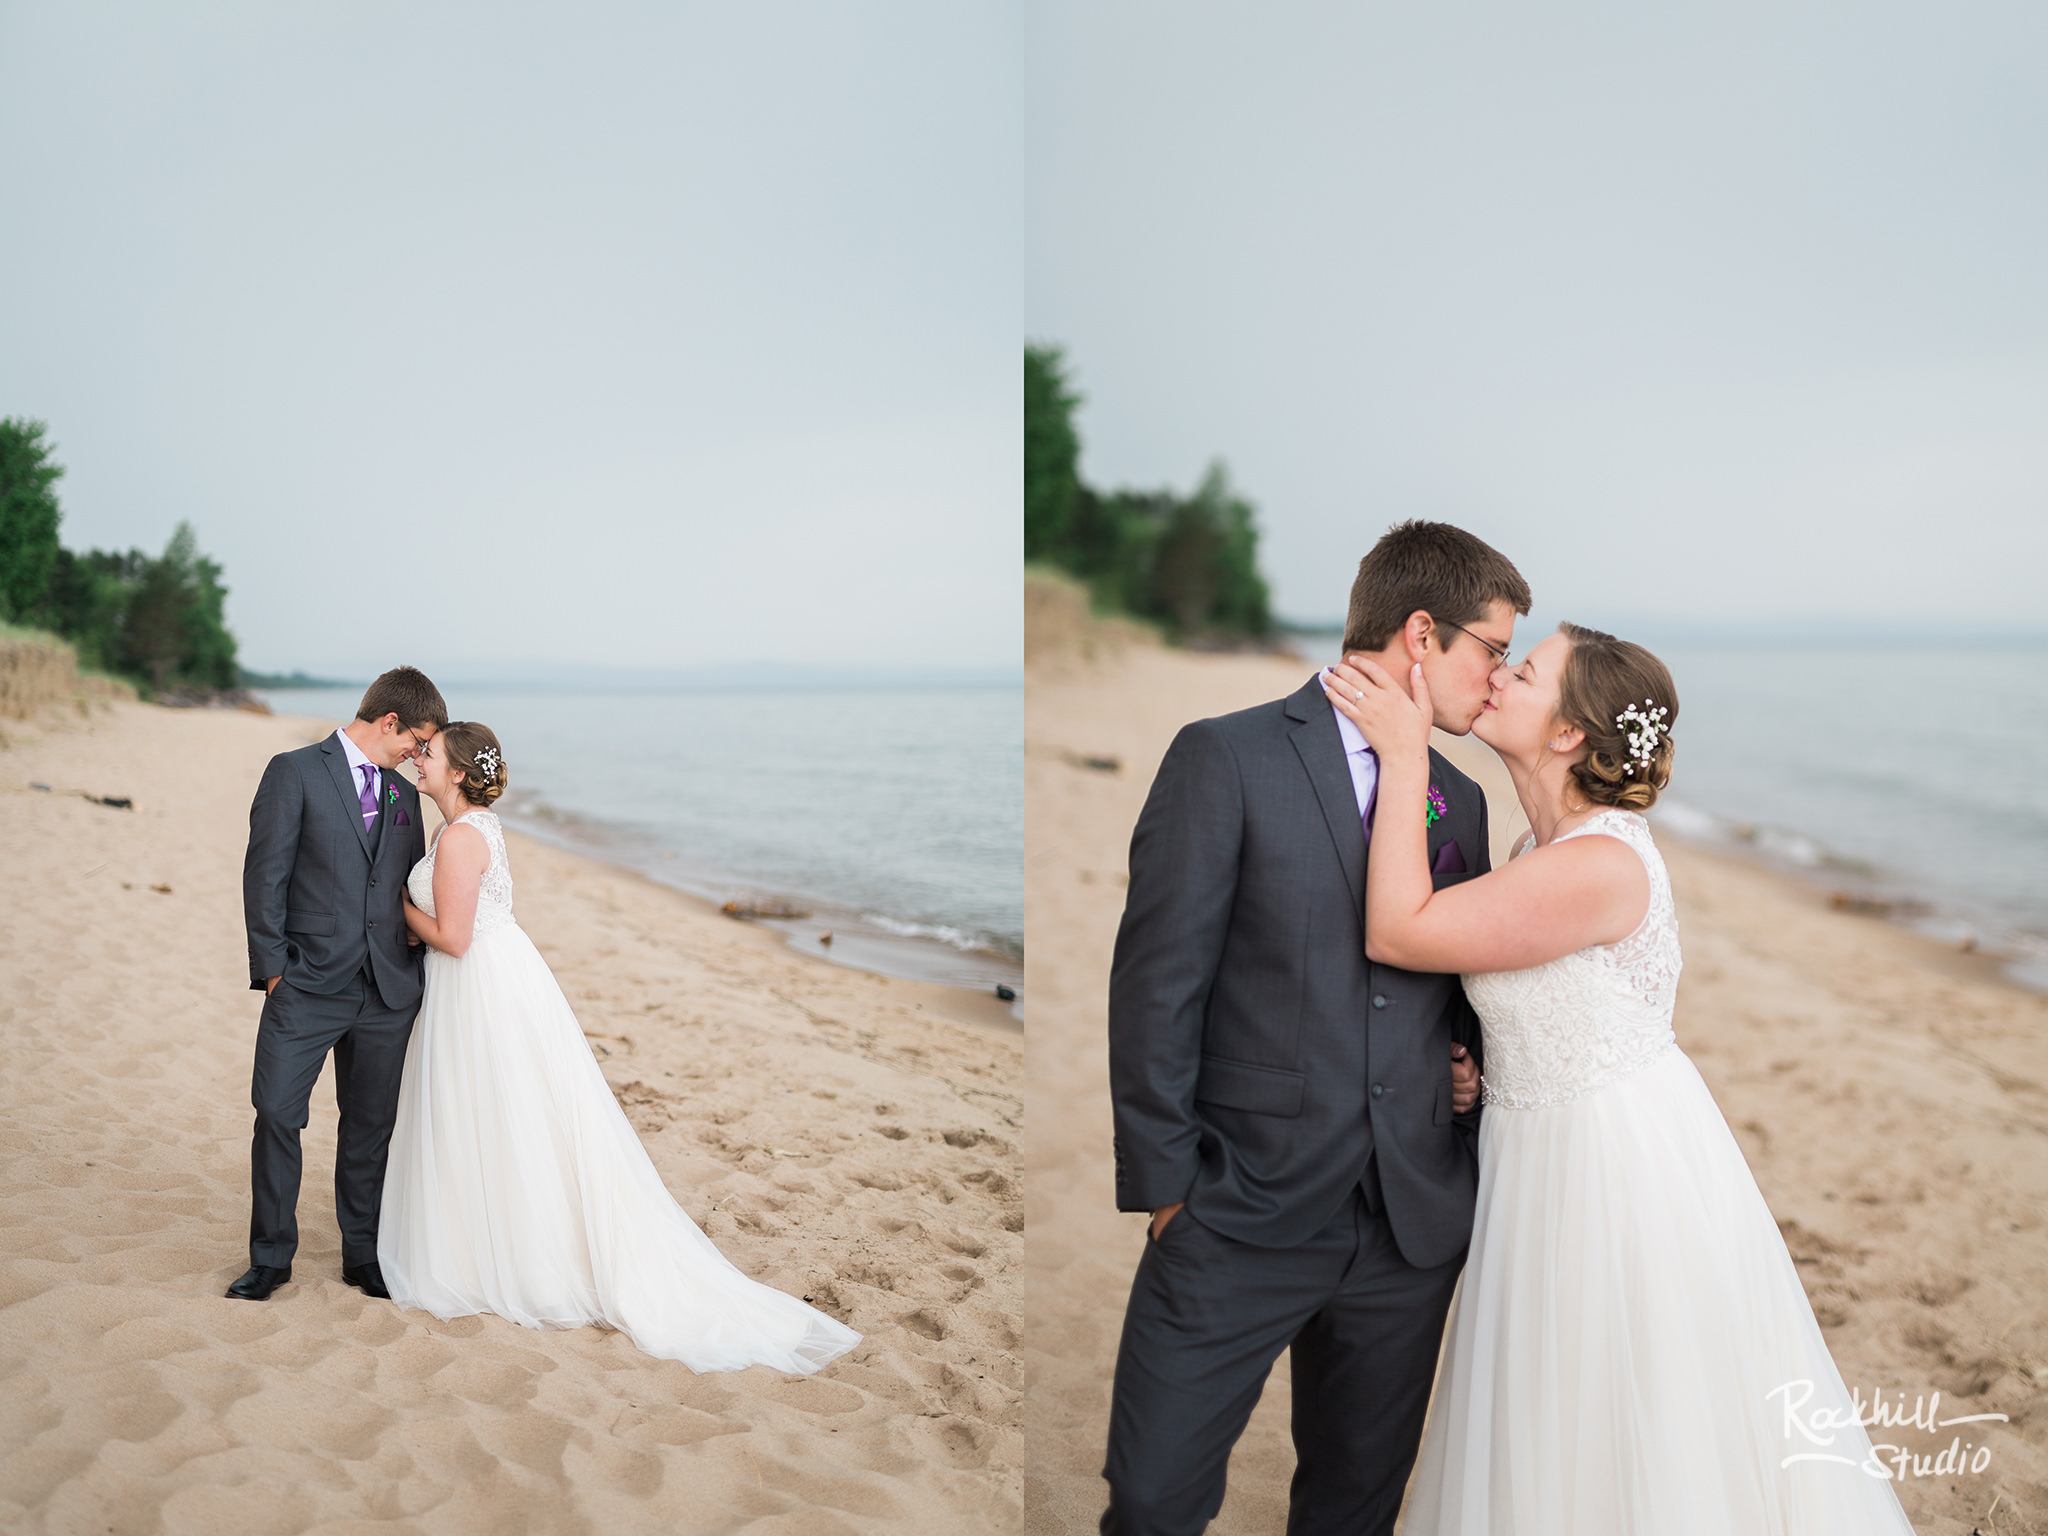 Marquette first look with bride and groom, Traverse City wedding photographer Rockhill Studio